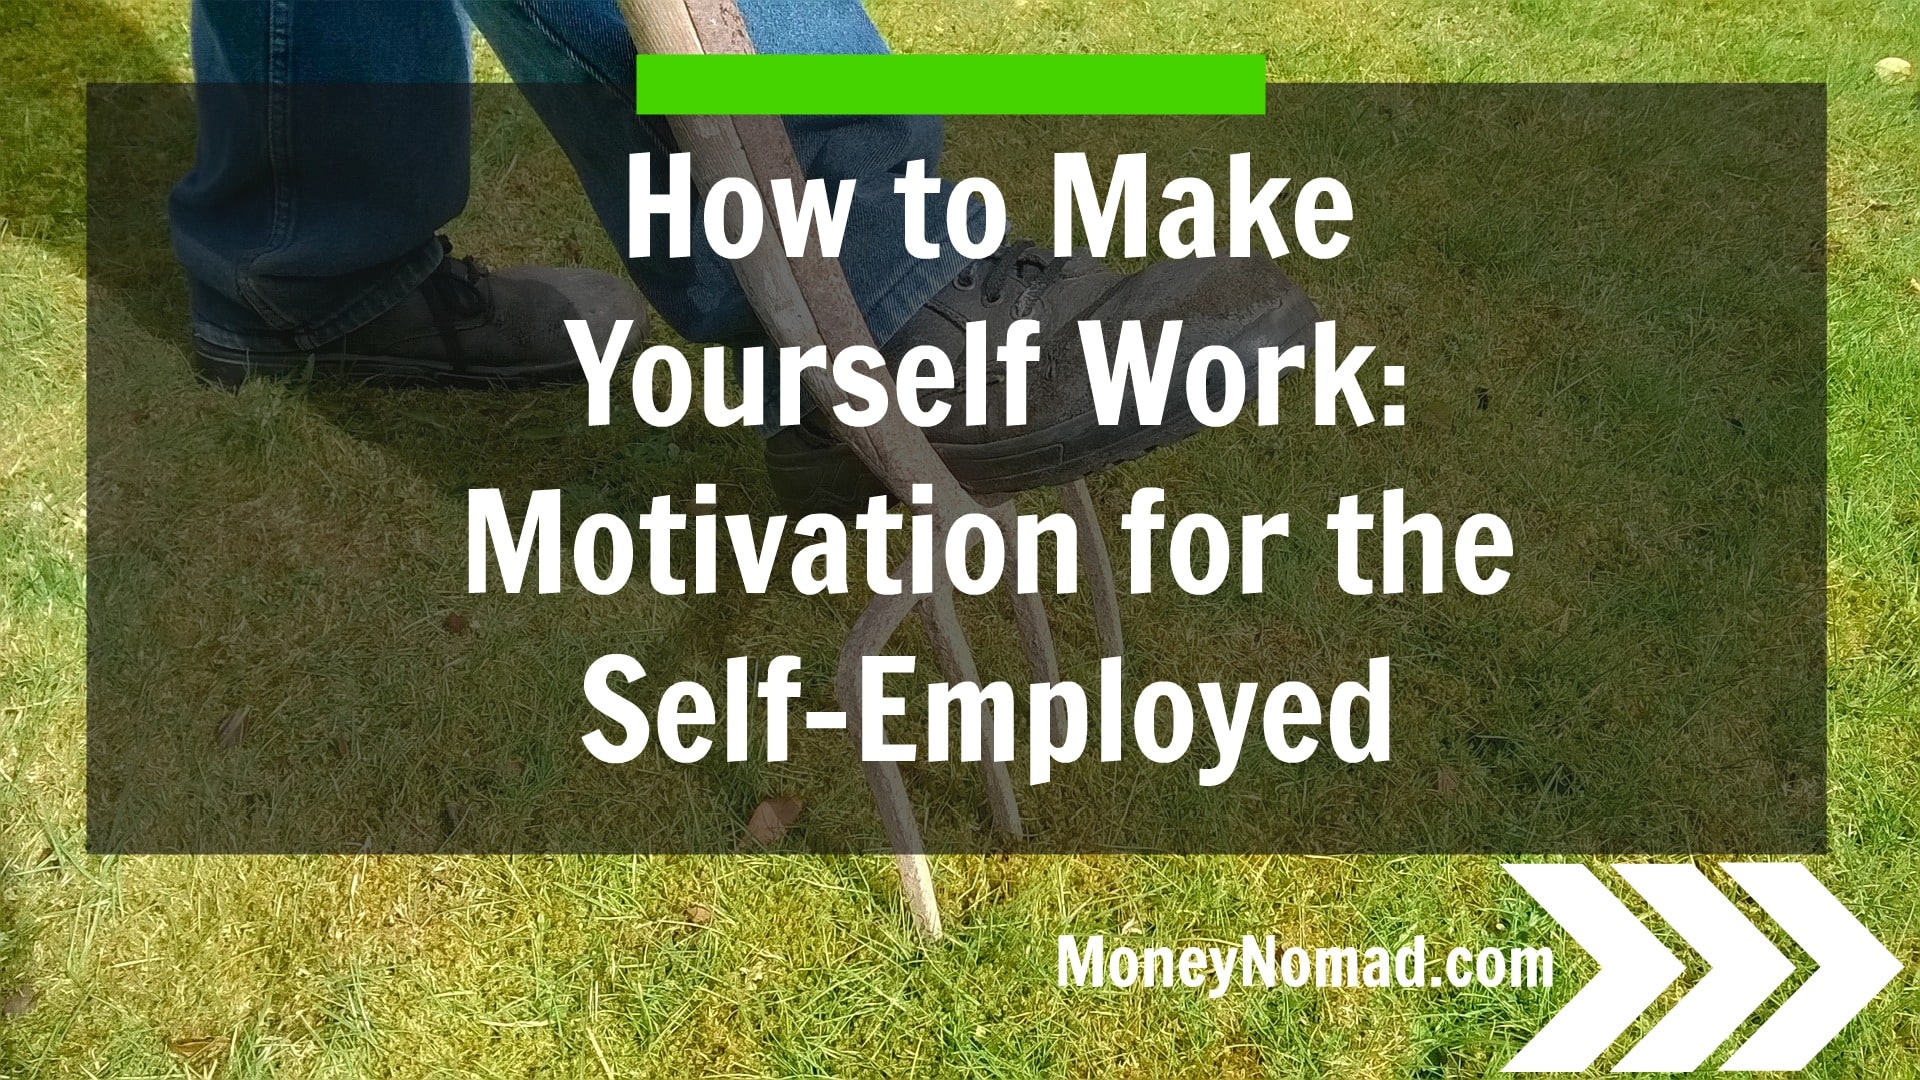 How to make yourself work 73